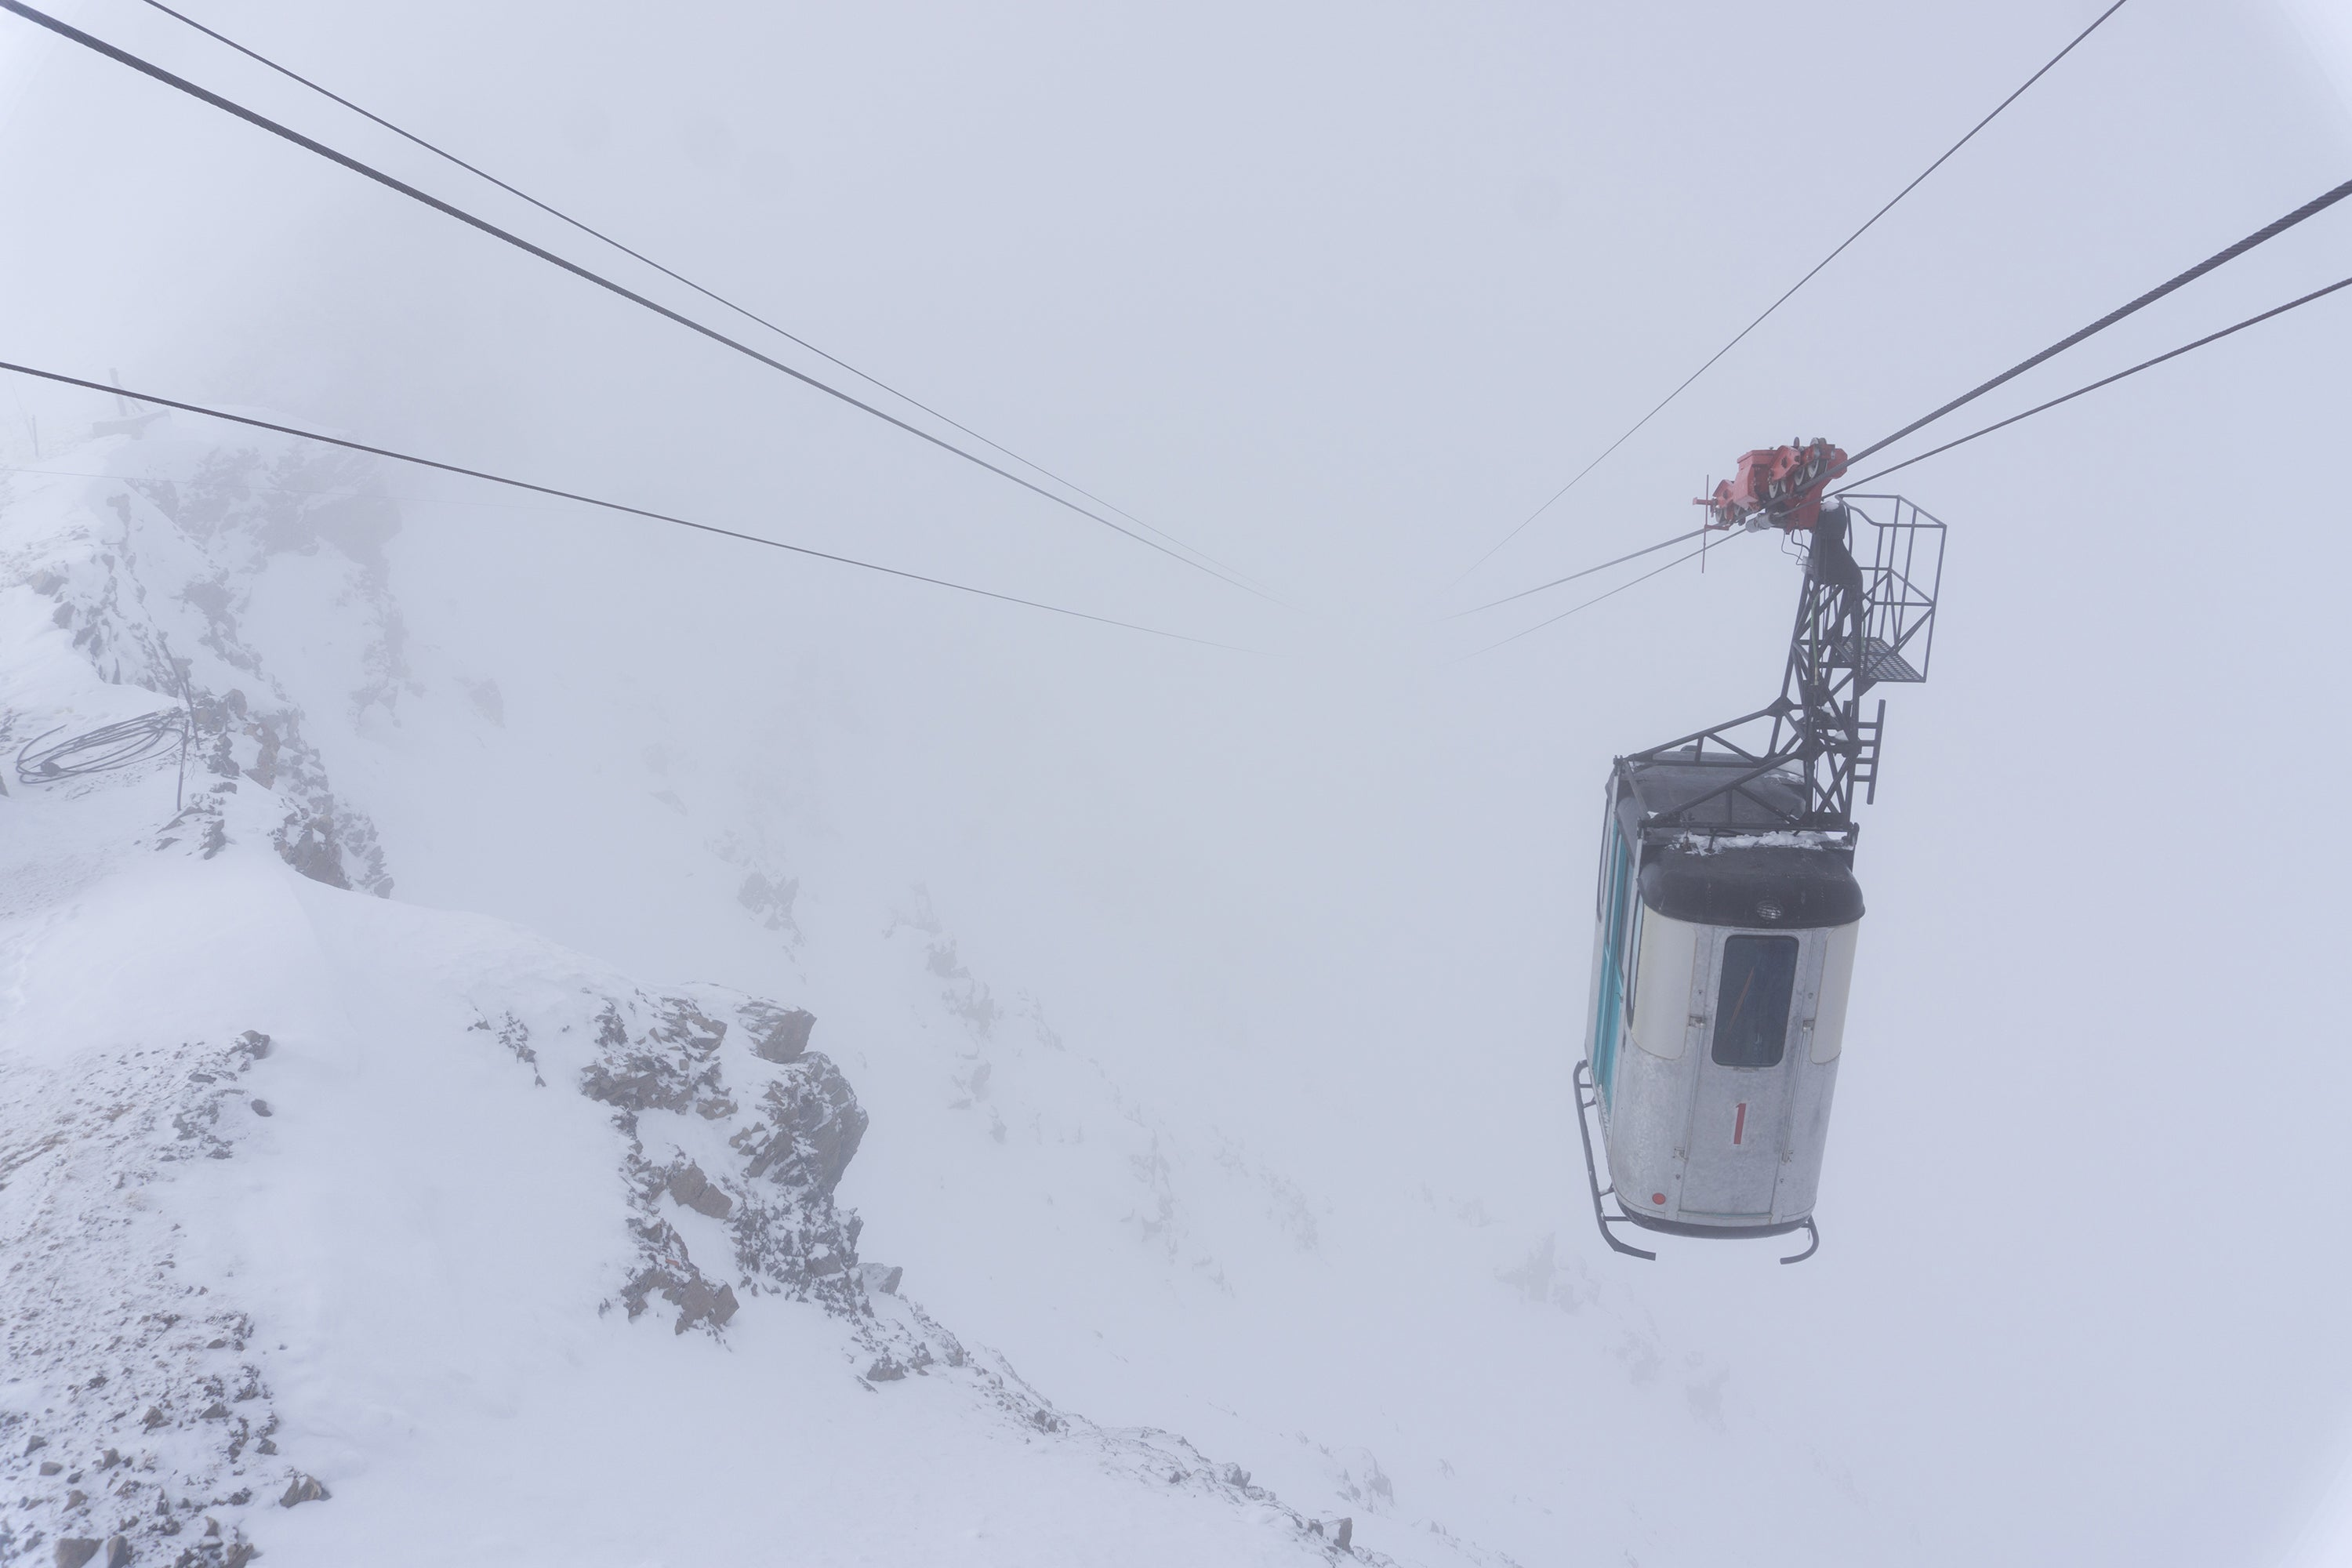 Small skier tram in clouds